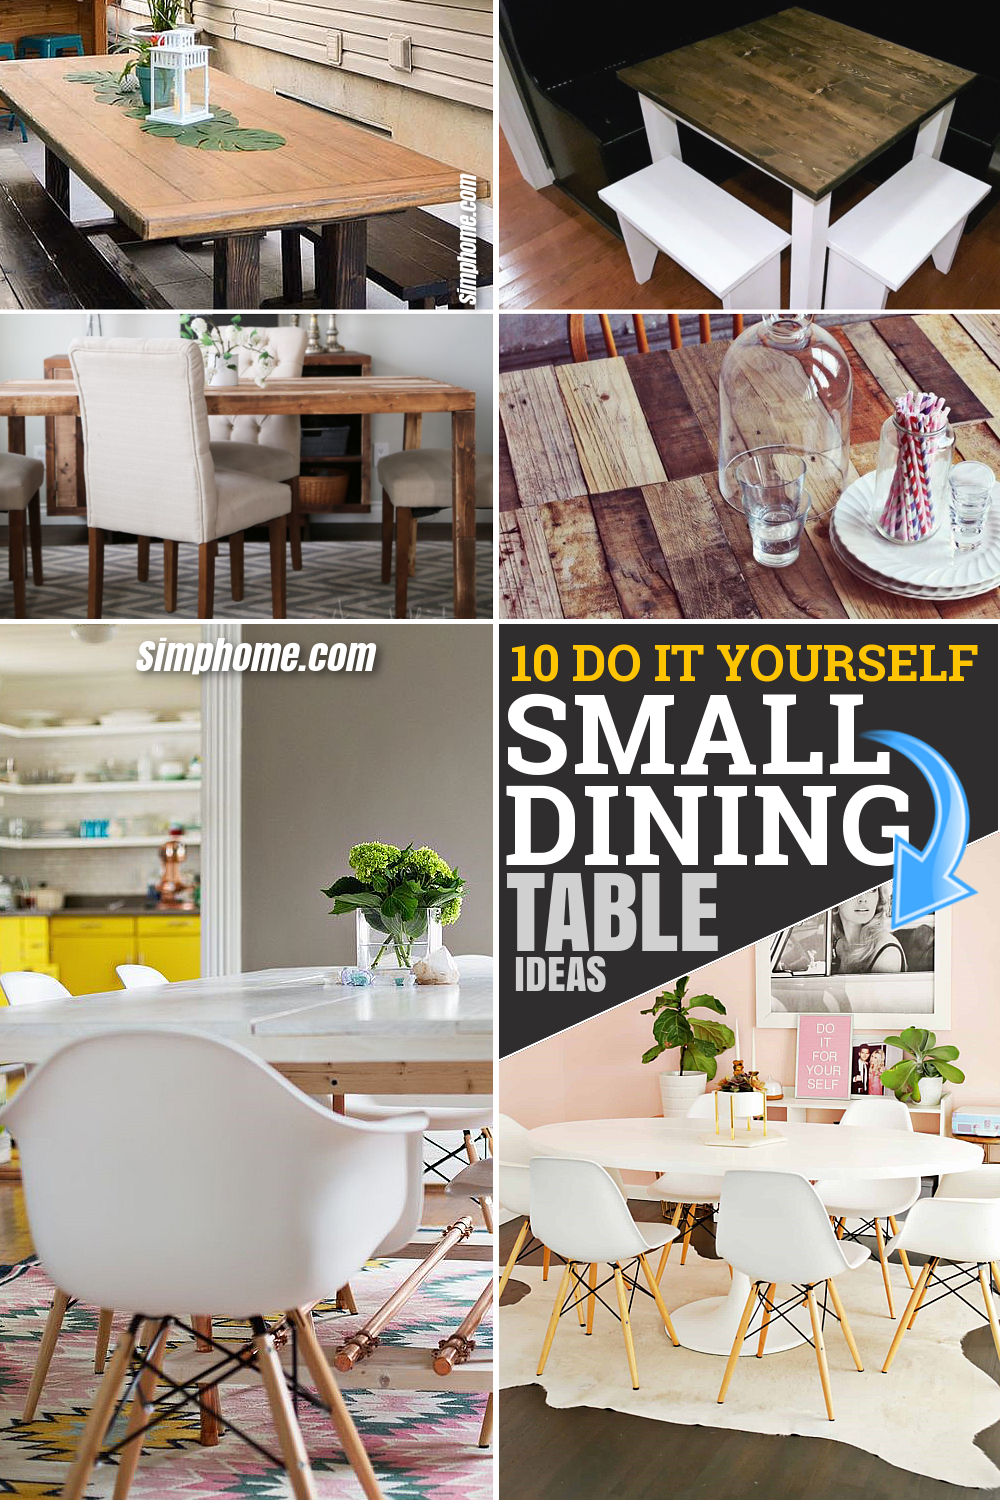 10 Small Dining Table Ideas BY SIMPHOME.COM and DIY Pinterest Featured Image